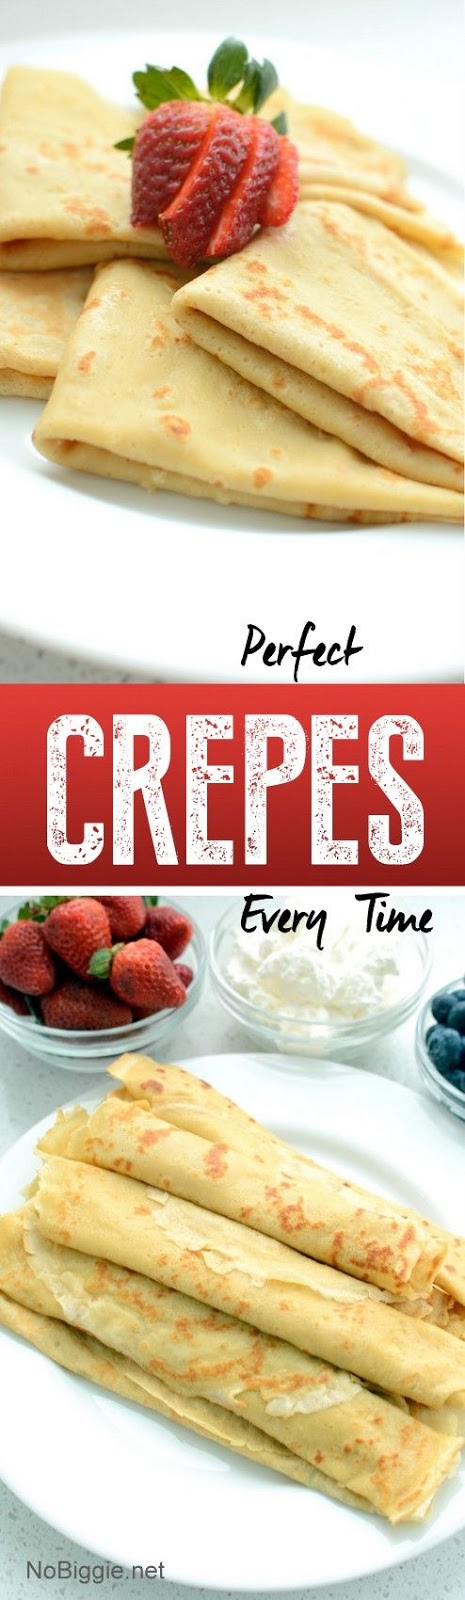 Perfect Crepes every tíme